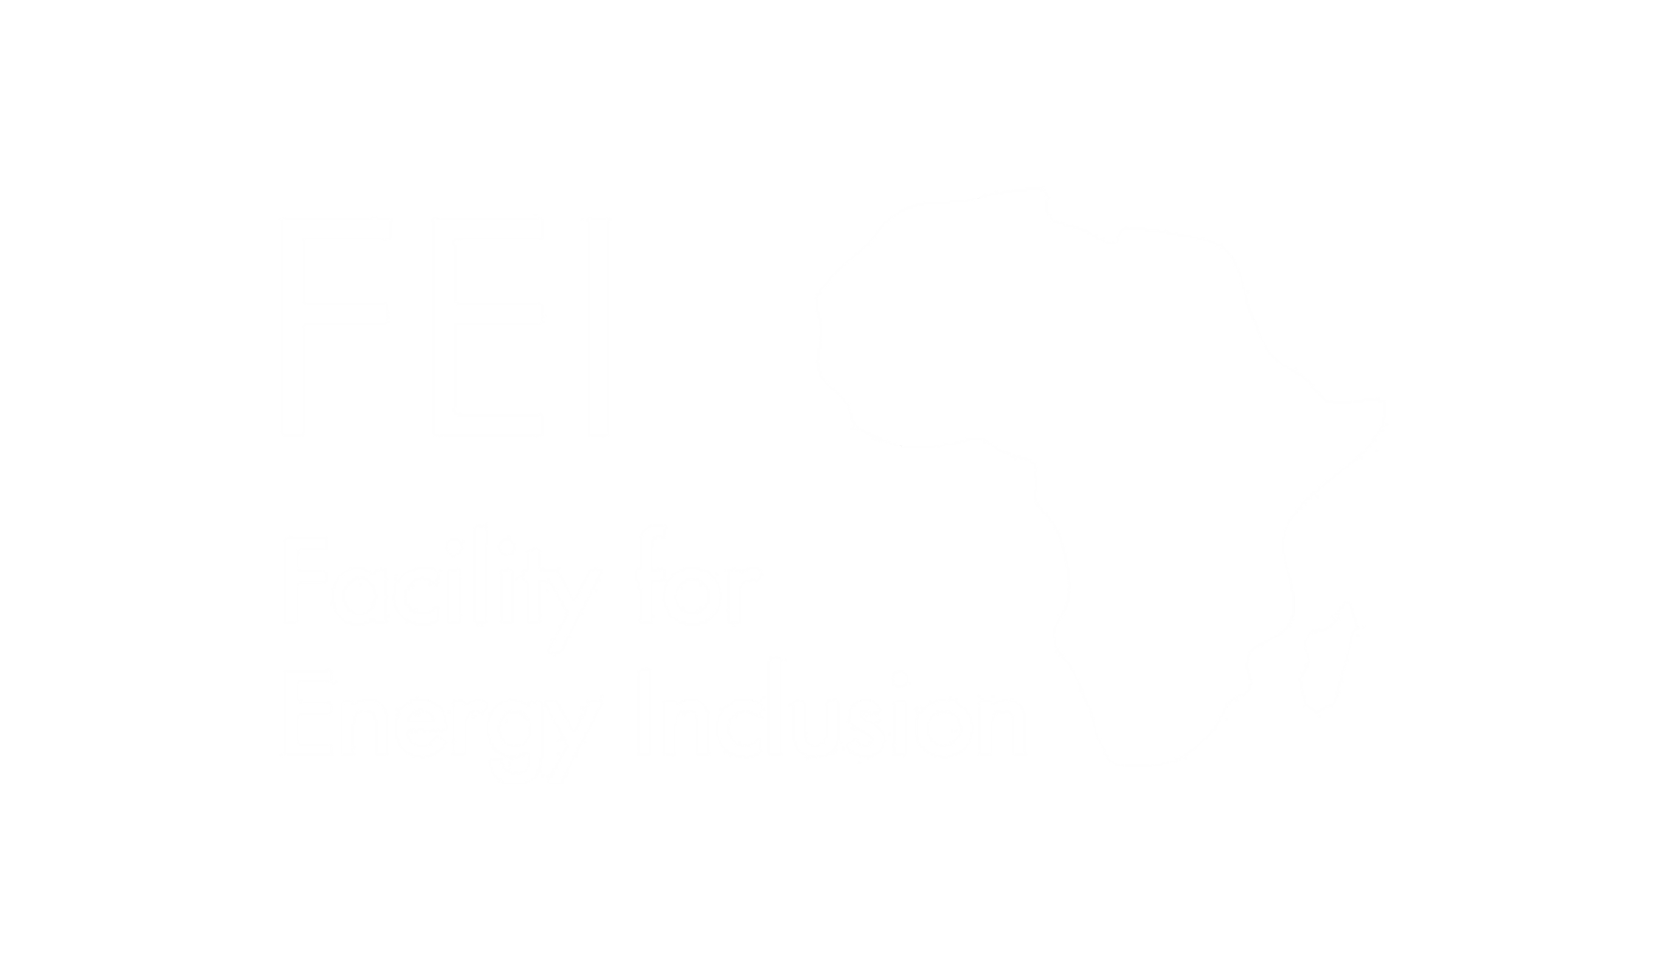 The Facility for Energy Inclusion